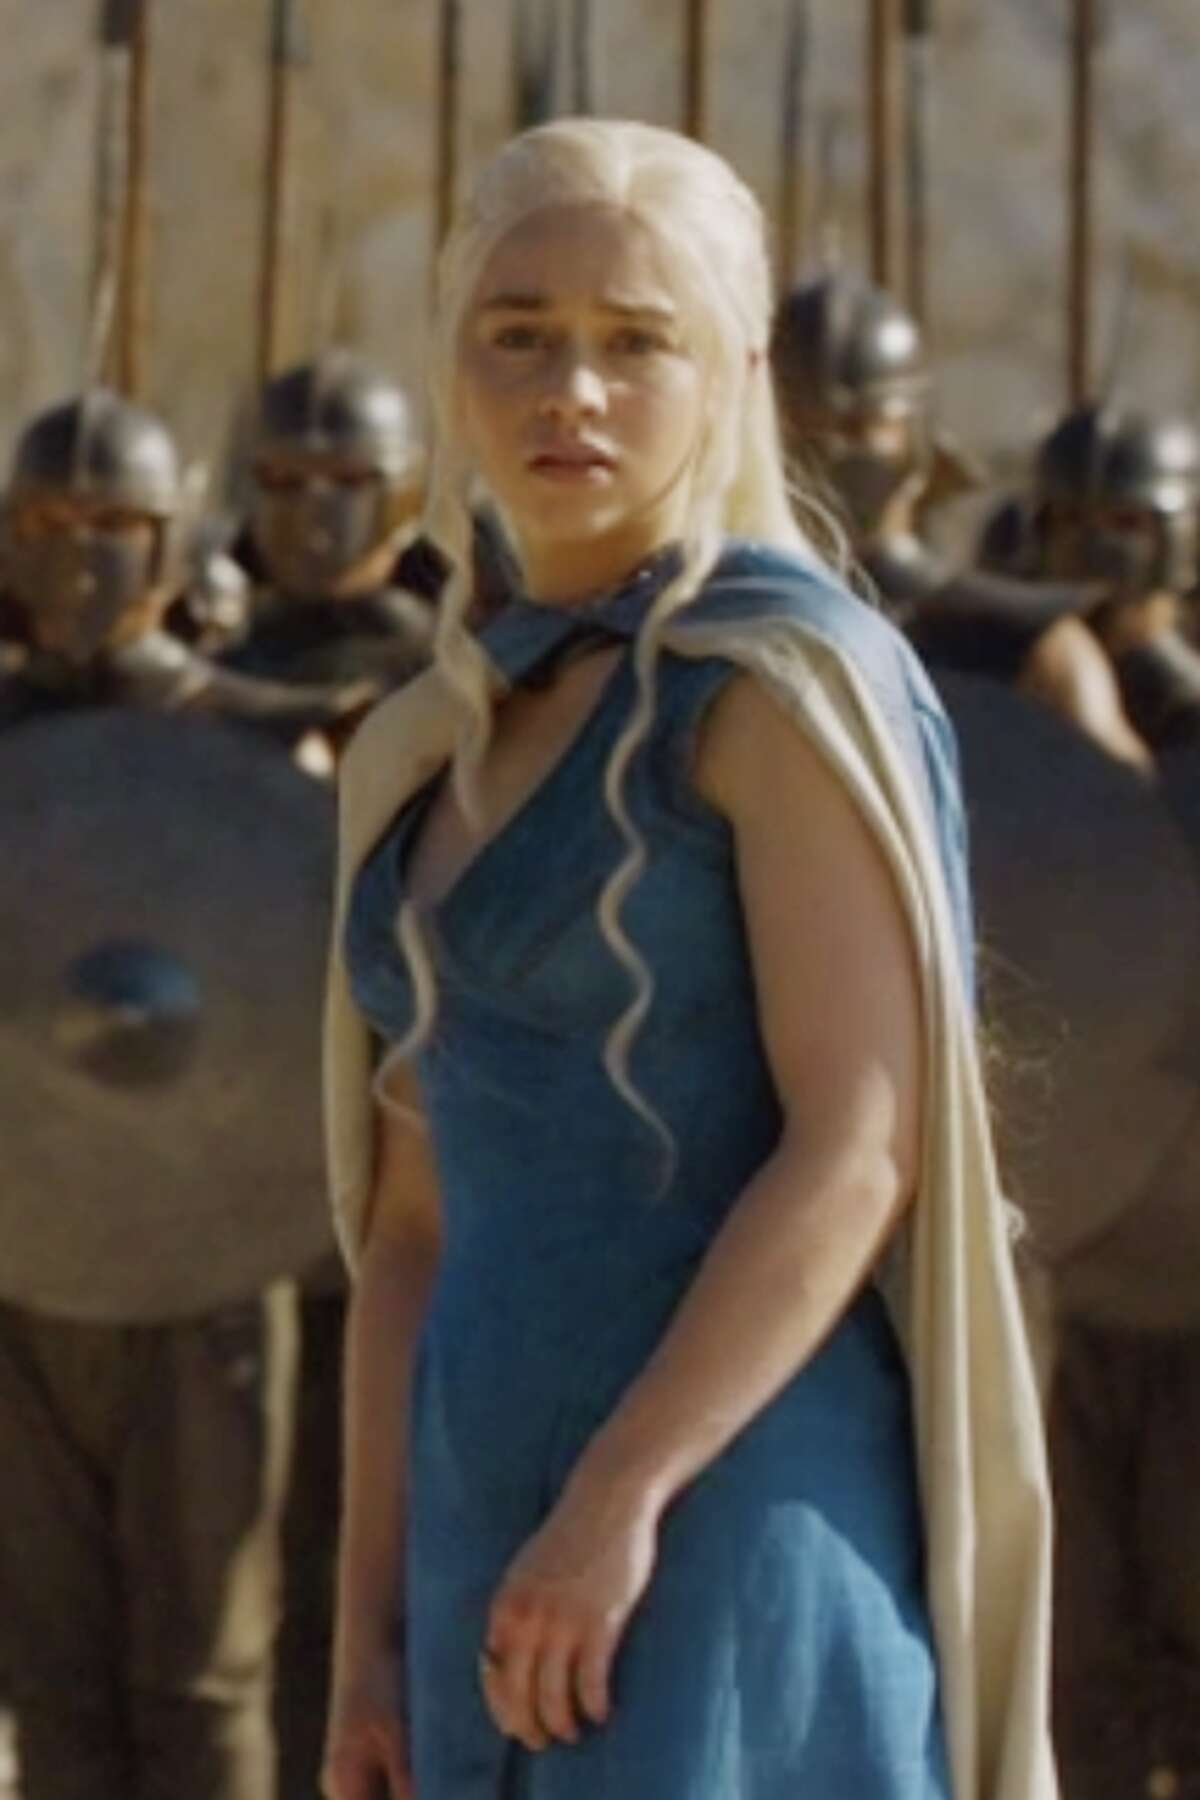 Emilia Clarke who plays Daenerys Targaryen will be in Houston. >>Need to catch up on Game of Thrones? Here's where we last left off.